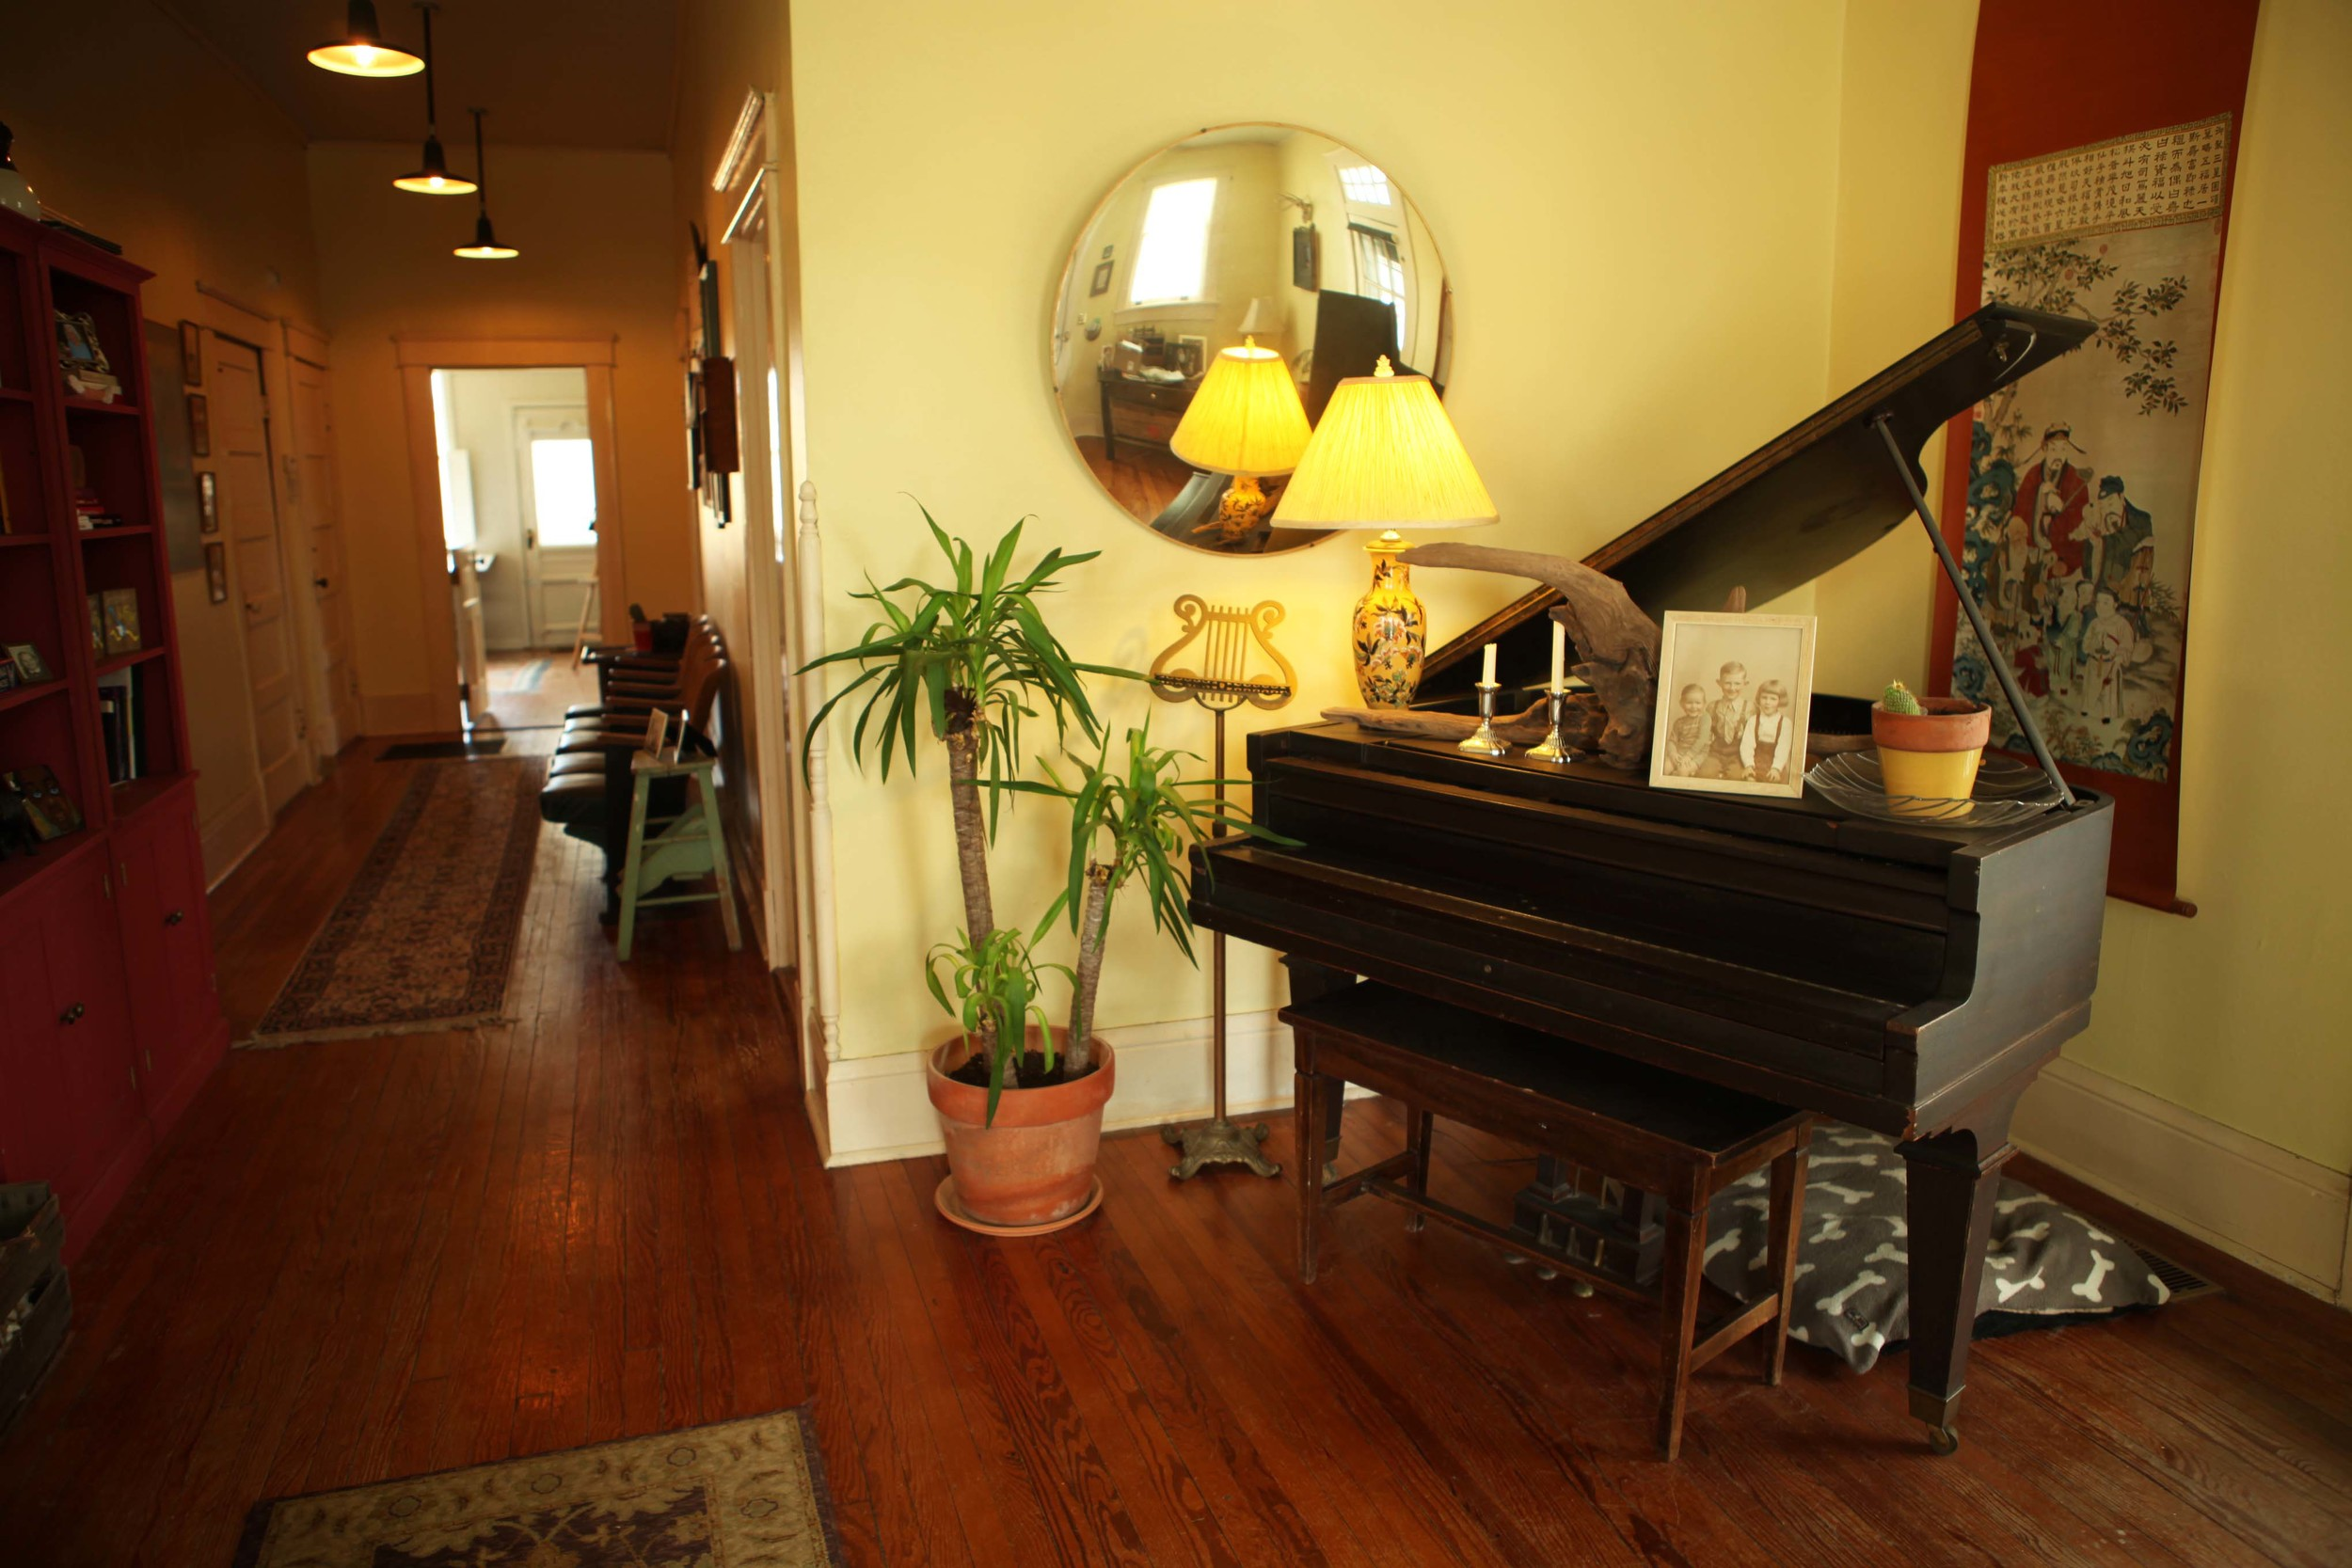 Our piano came with the home. We need to have it tuned and a few of the keys don't work, maybe now that we are having a child we will get it working so he can take piano lessons.